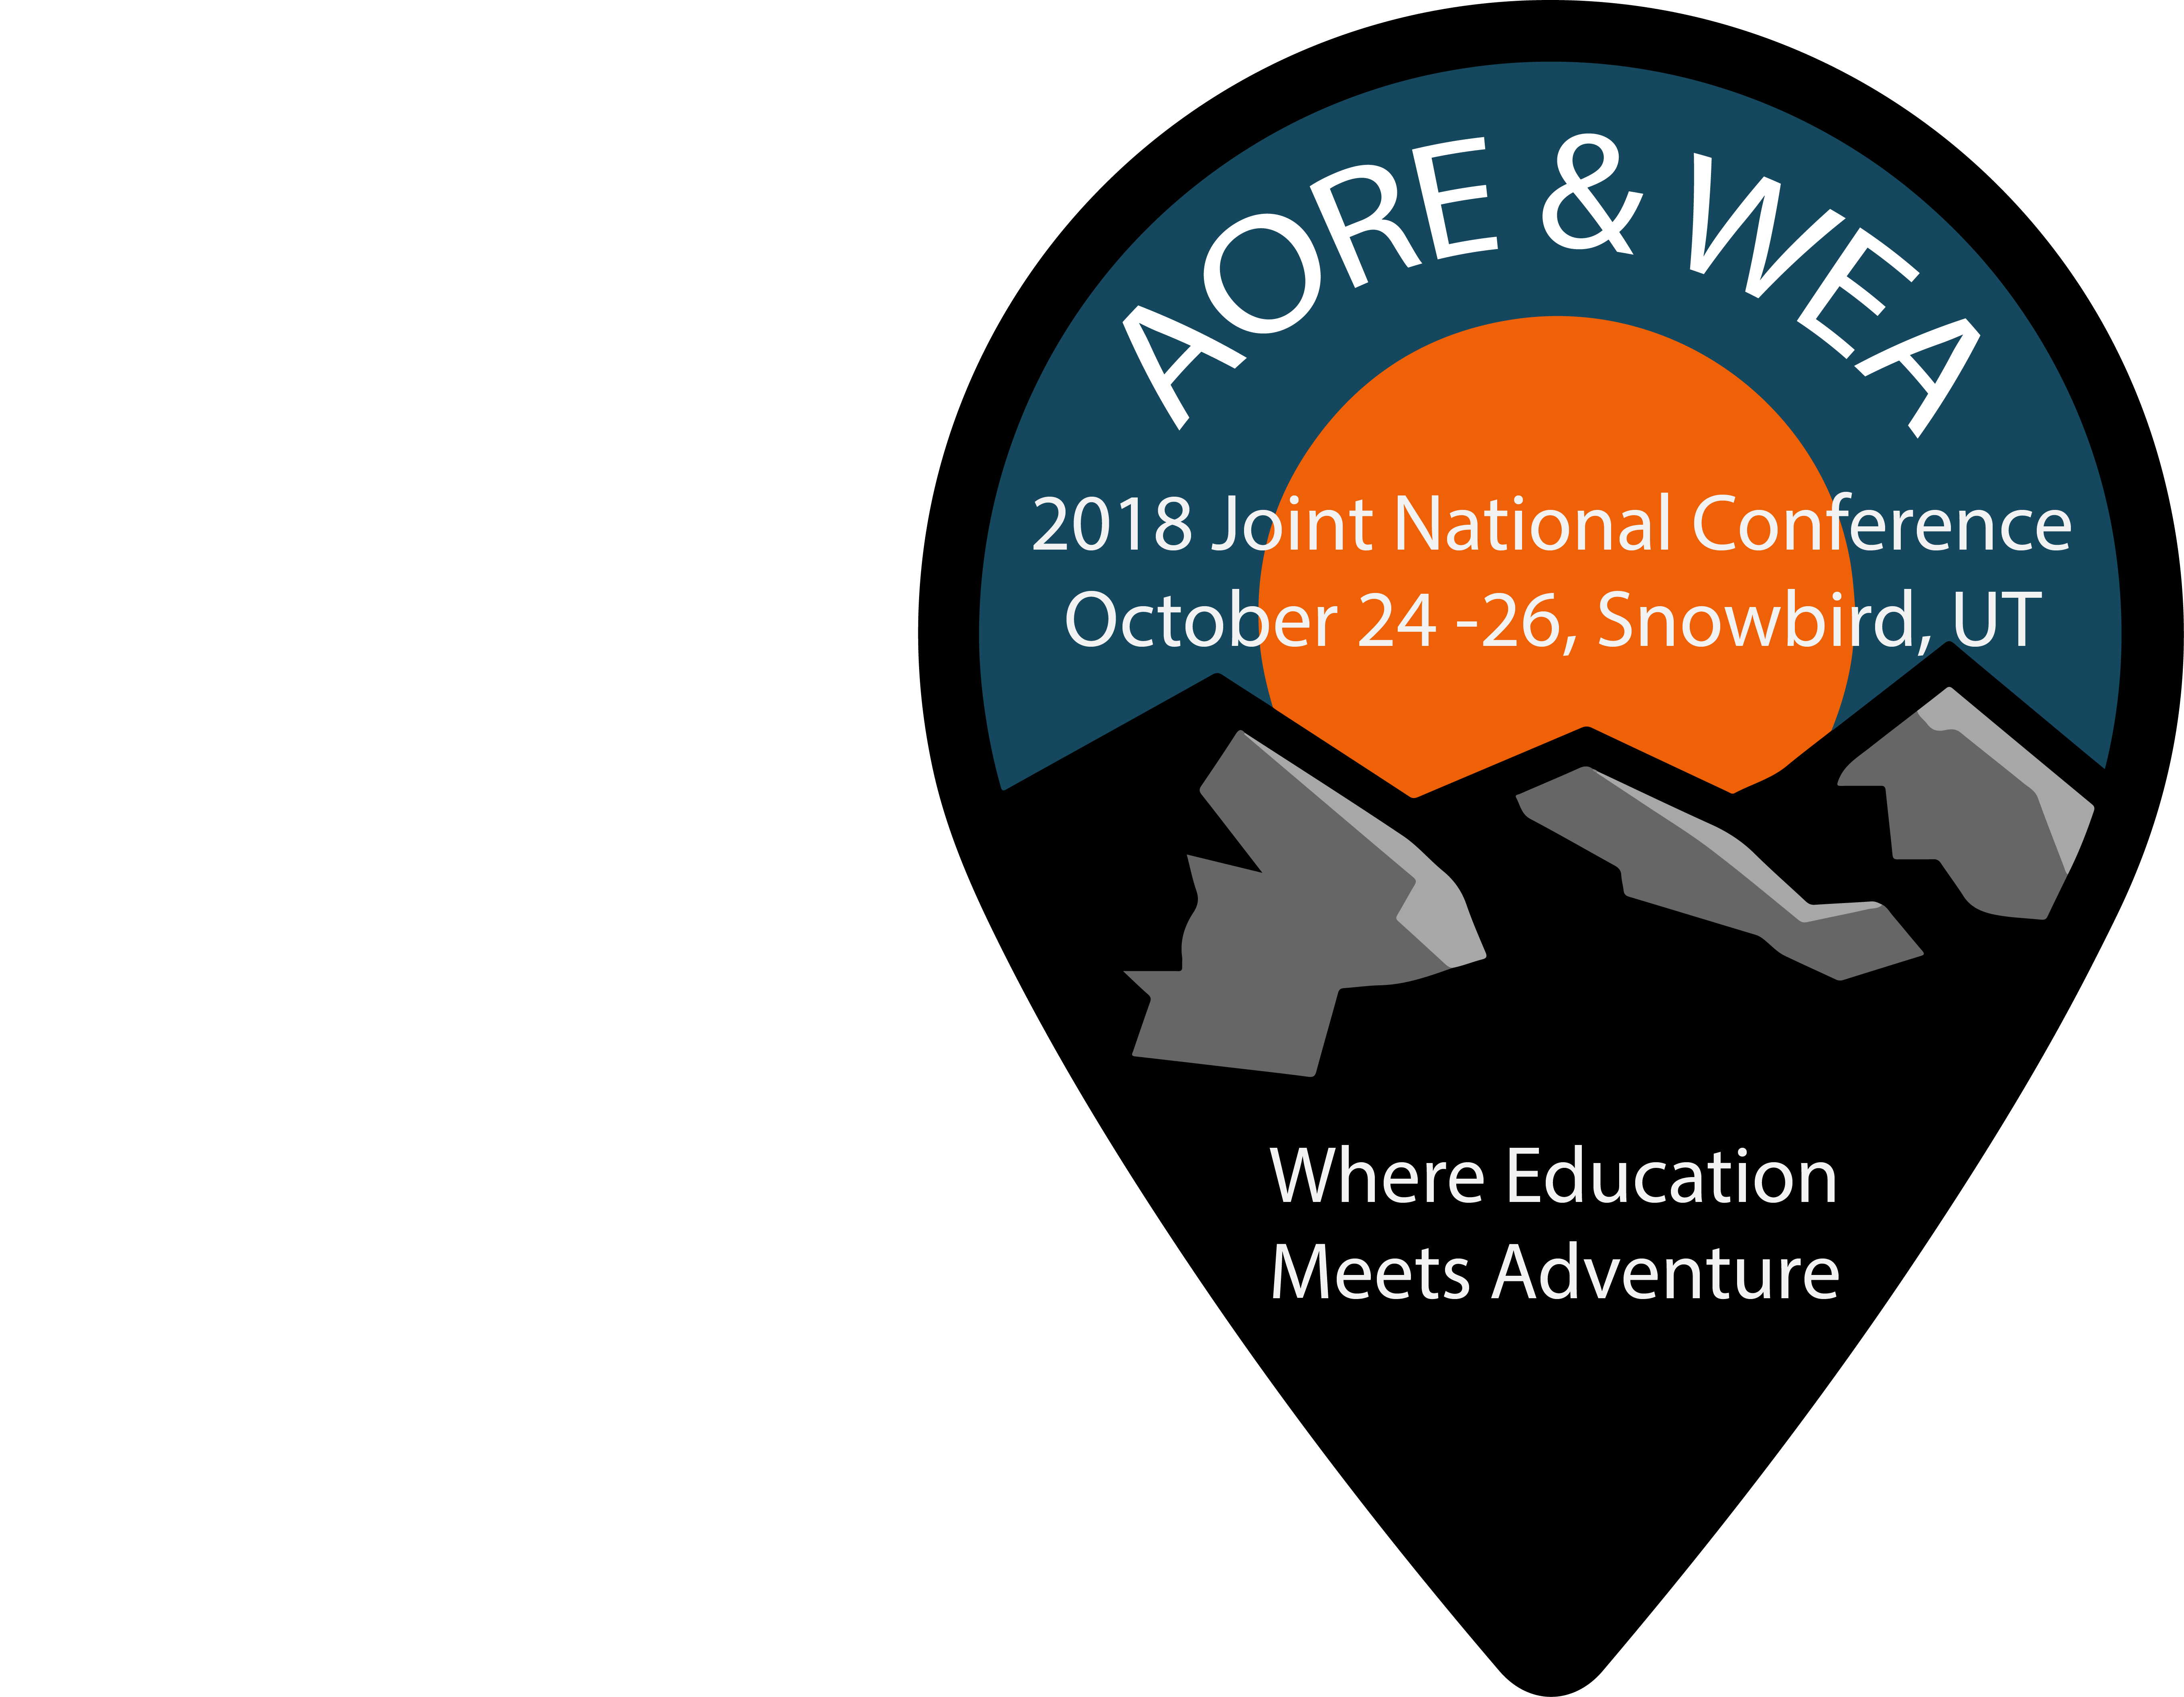 AORE Conference History - Association of Outdoor Recreation